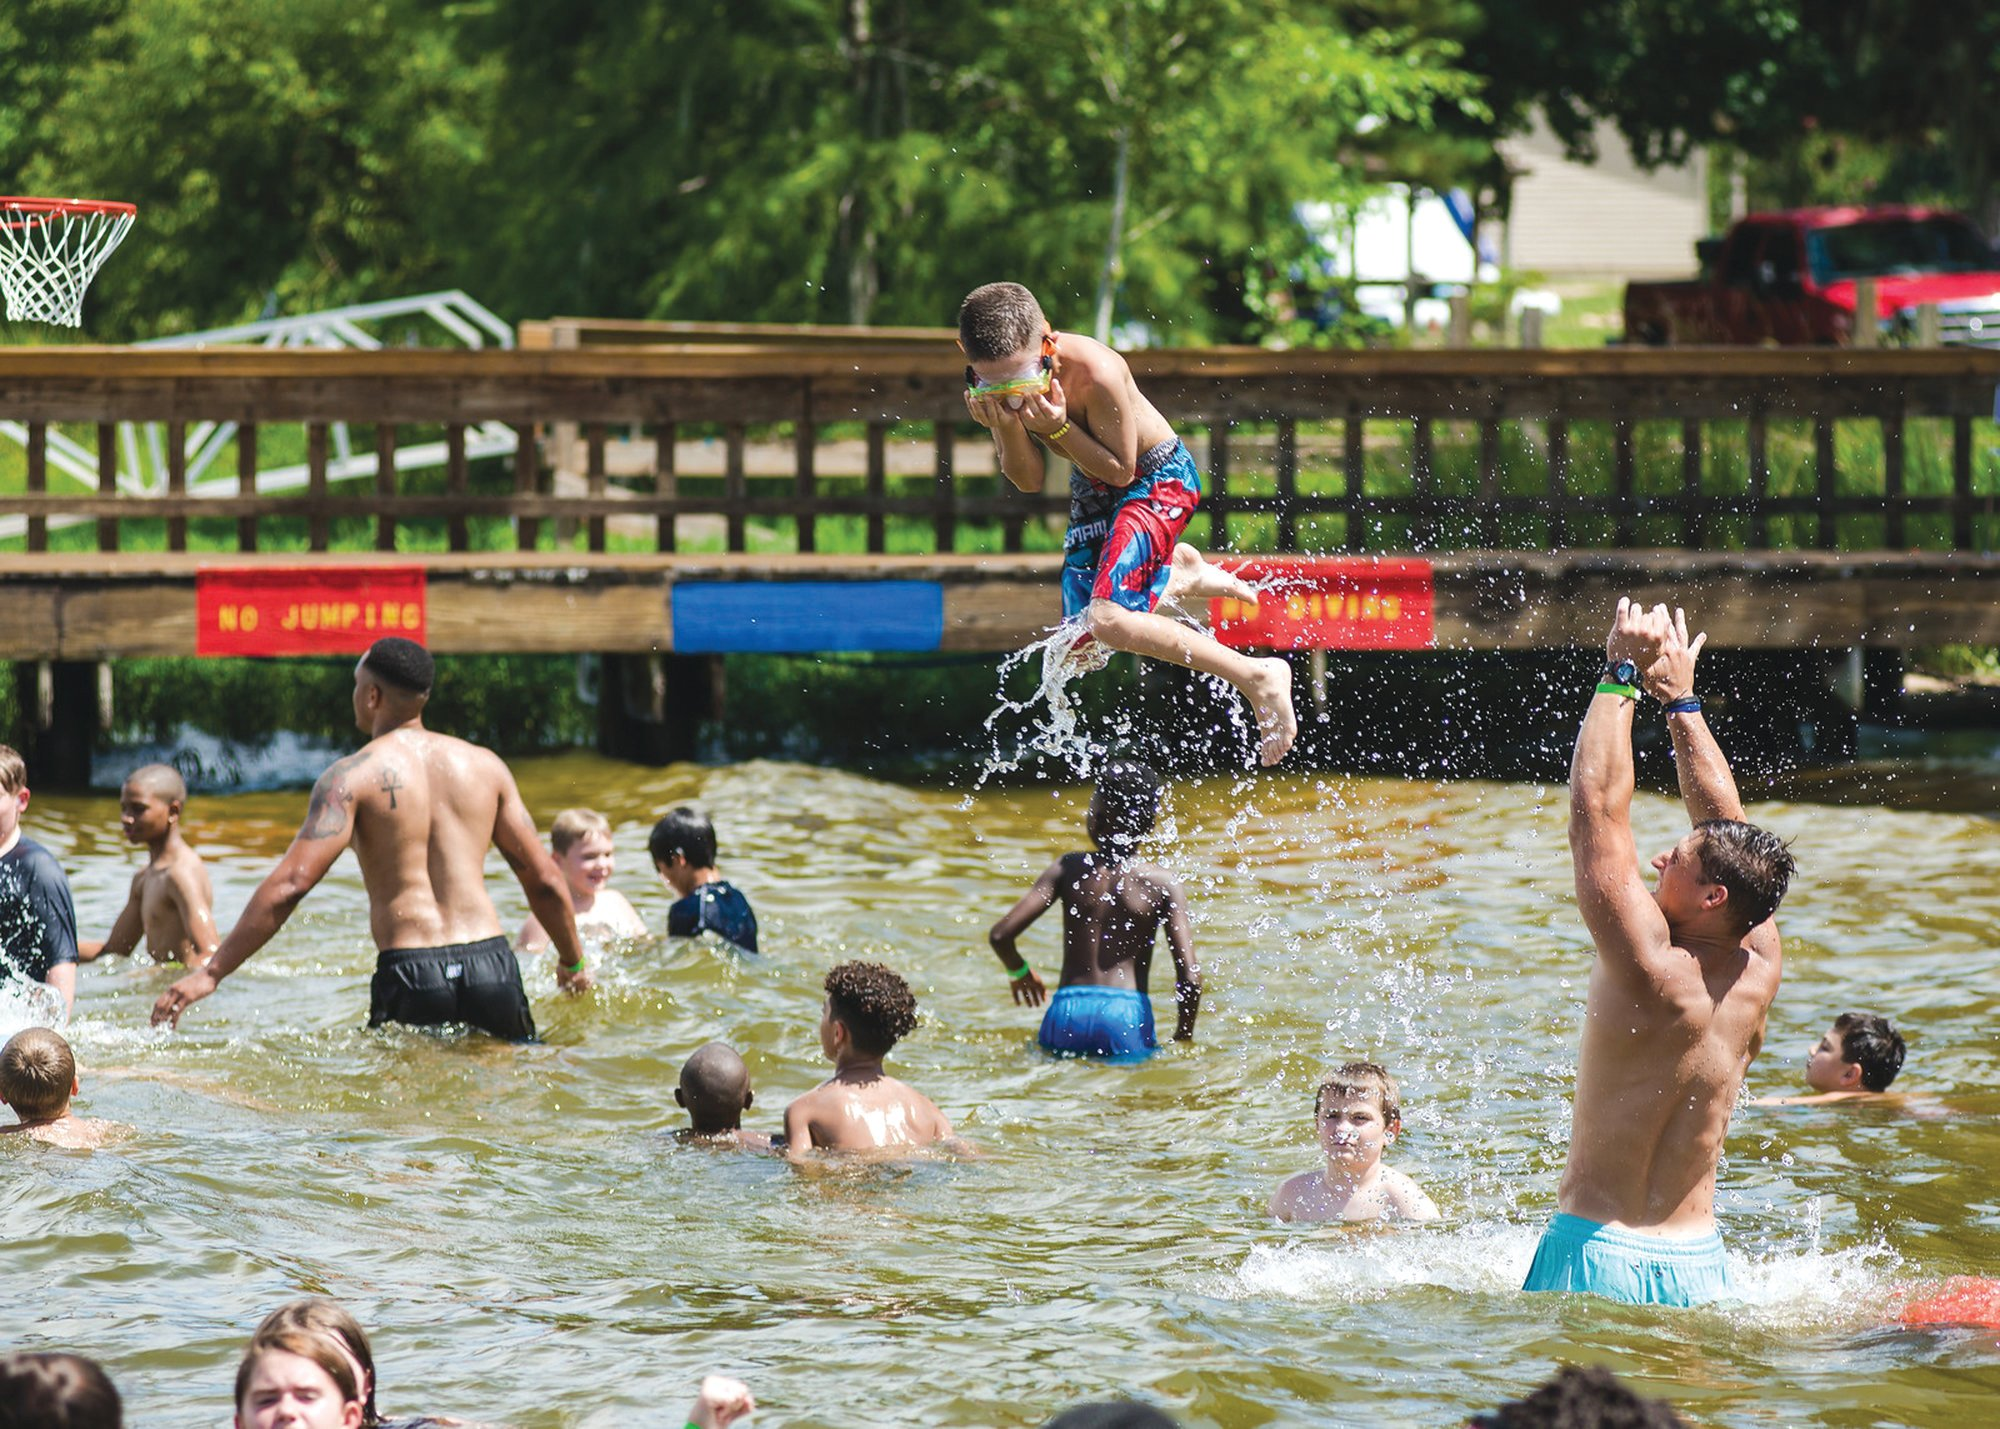 Although Camp Happy Days has been postponed for 2020, the camp organizers hope to hold the weeklong event later in the summer or early fall.